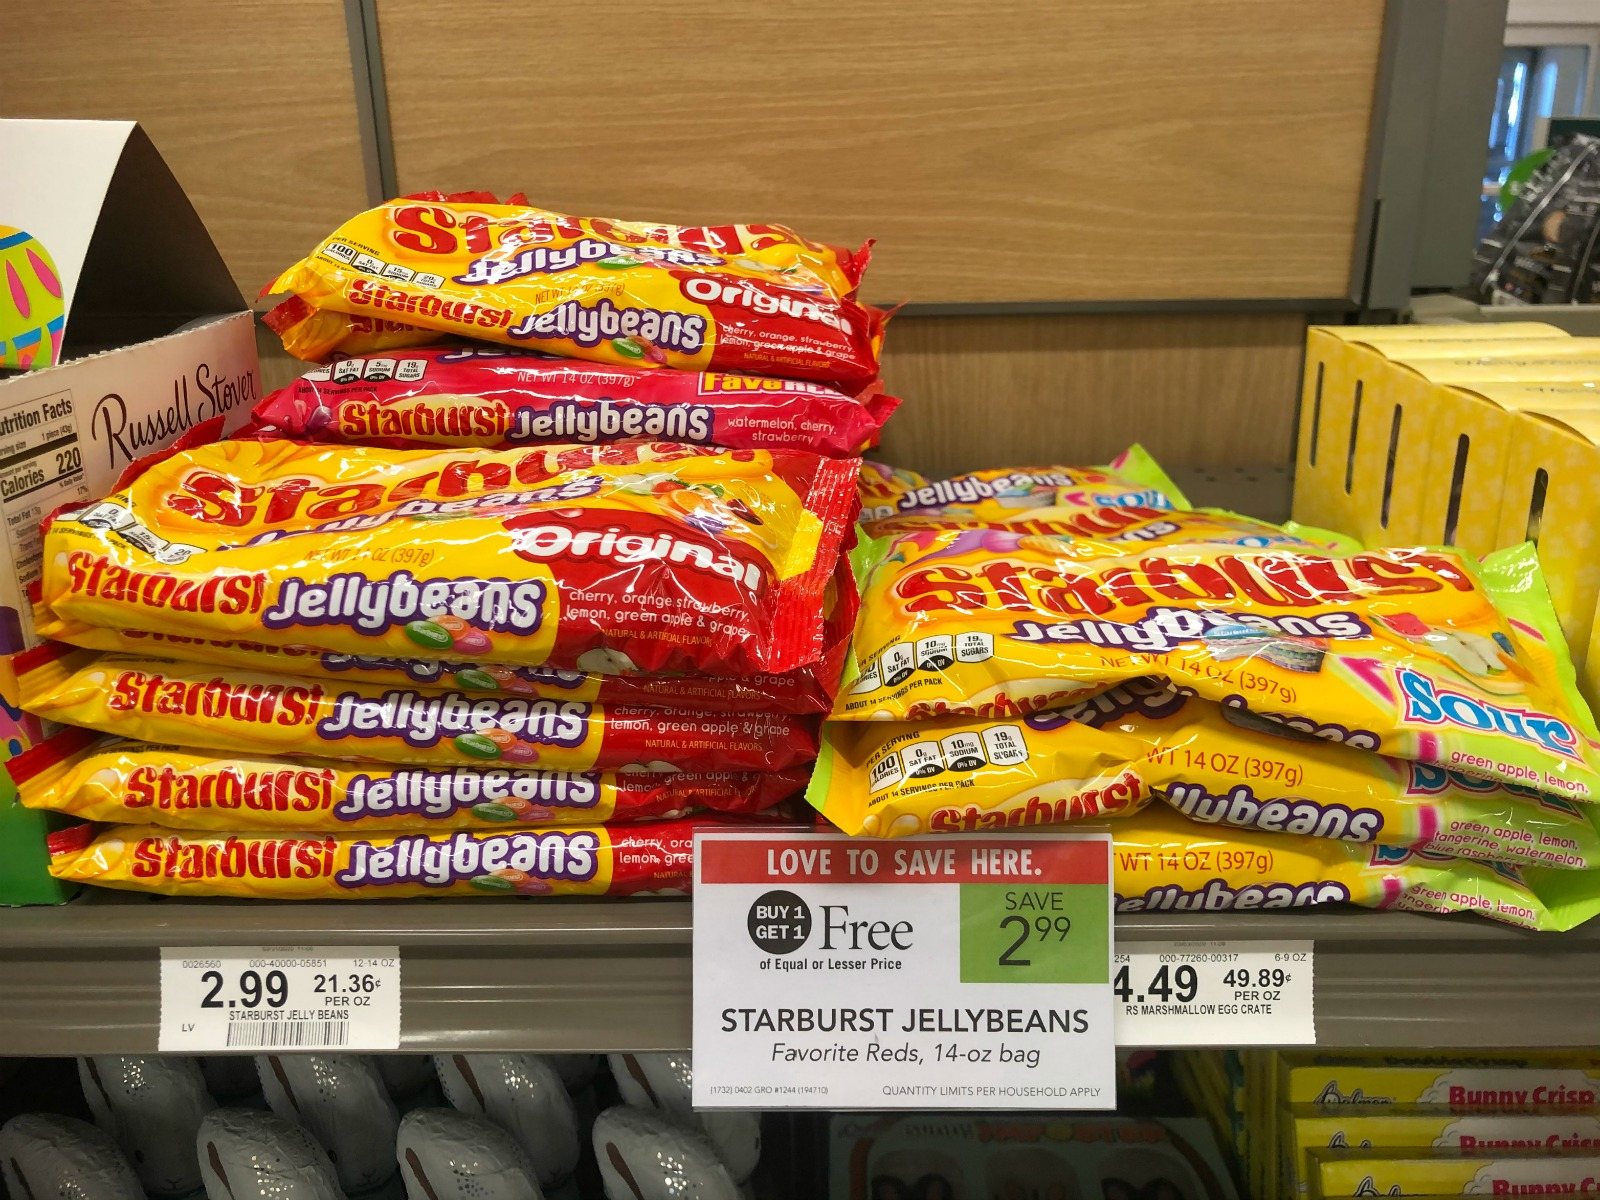 Starburst Jelly Beans Only 75¢ This Week At Publix on I Heart Publix 1